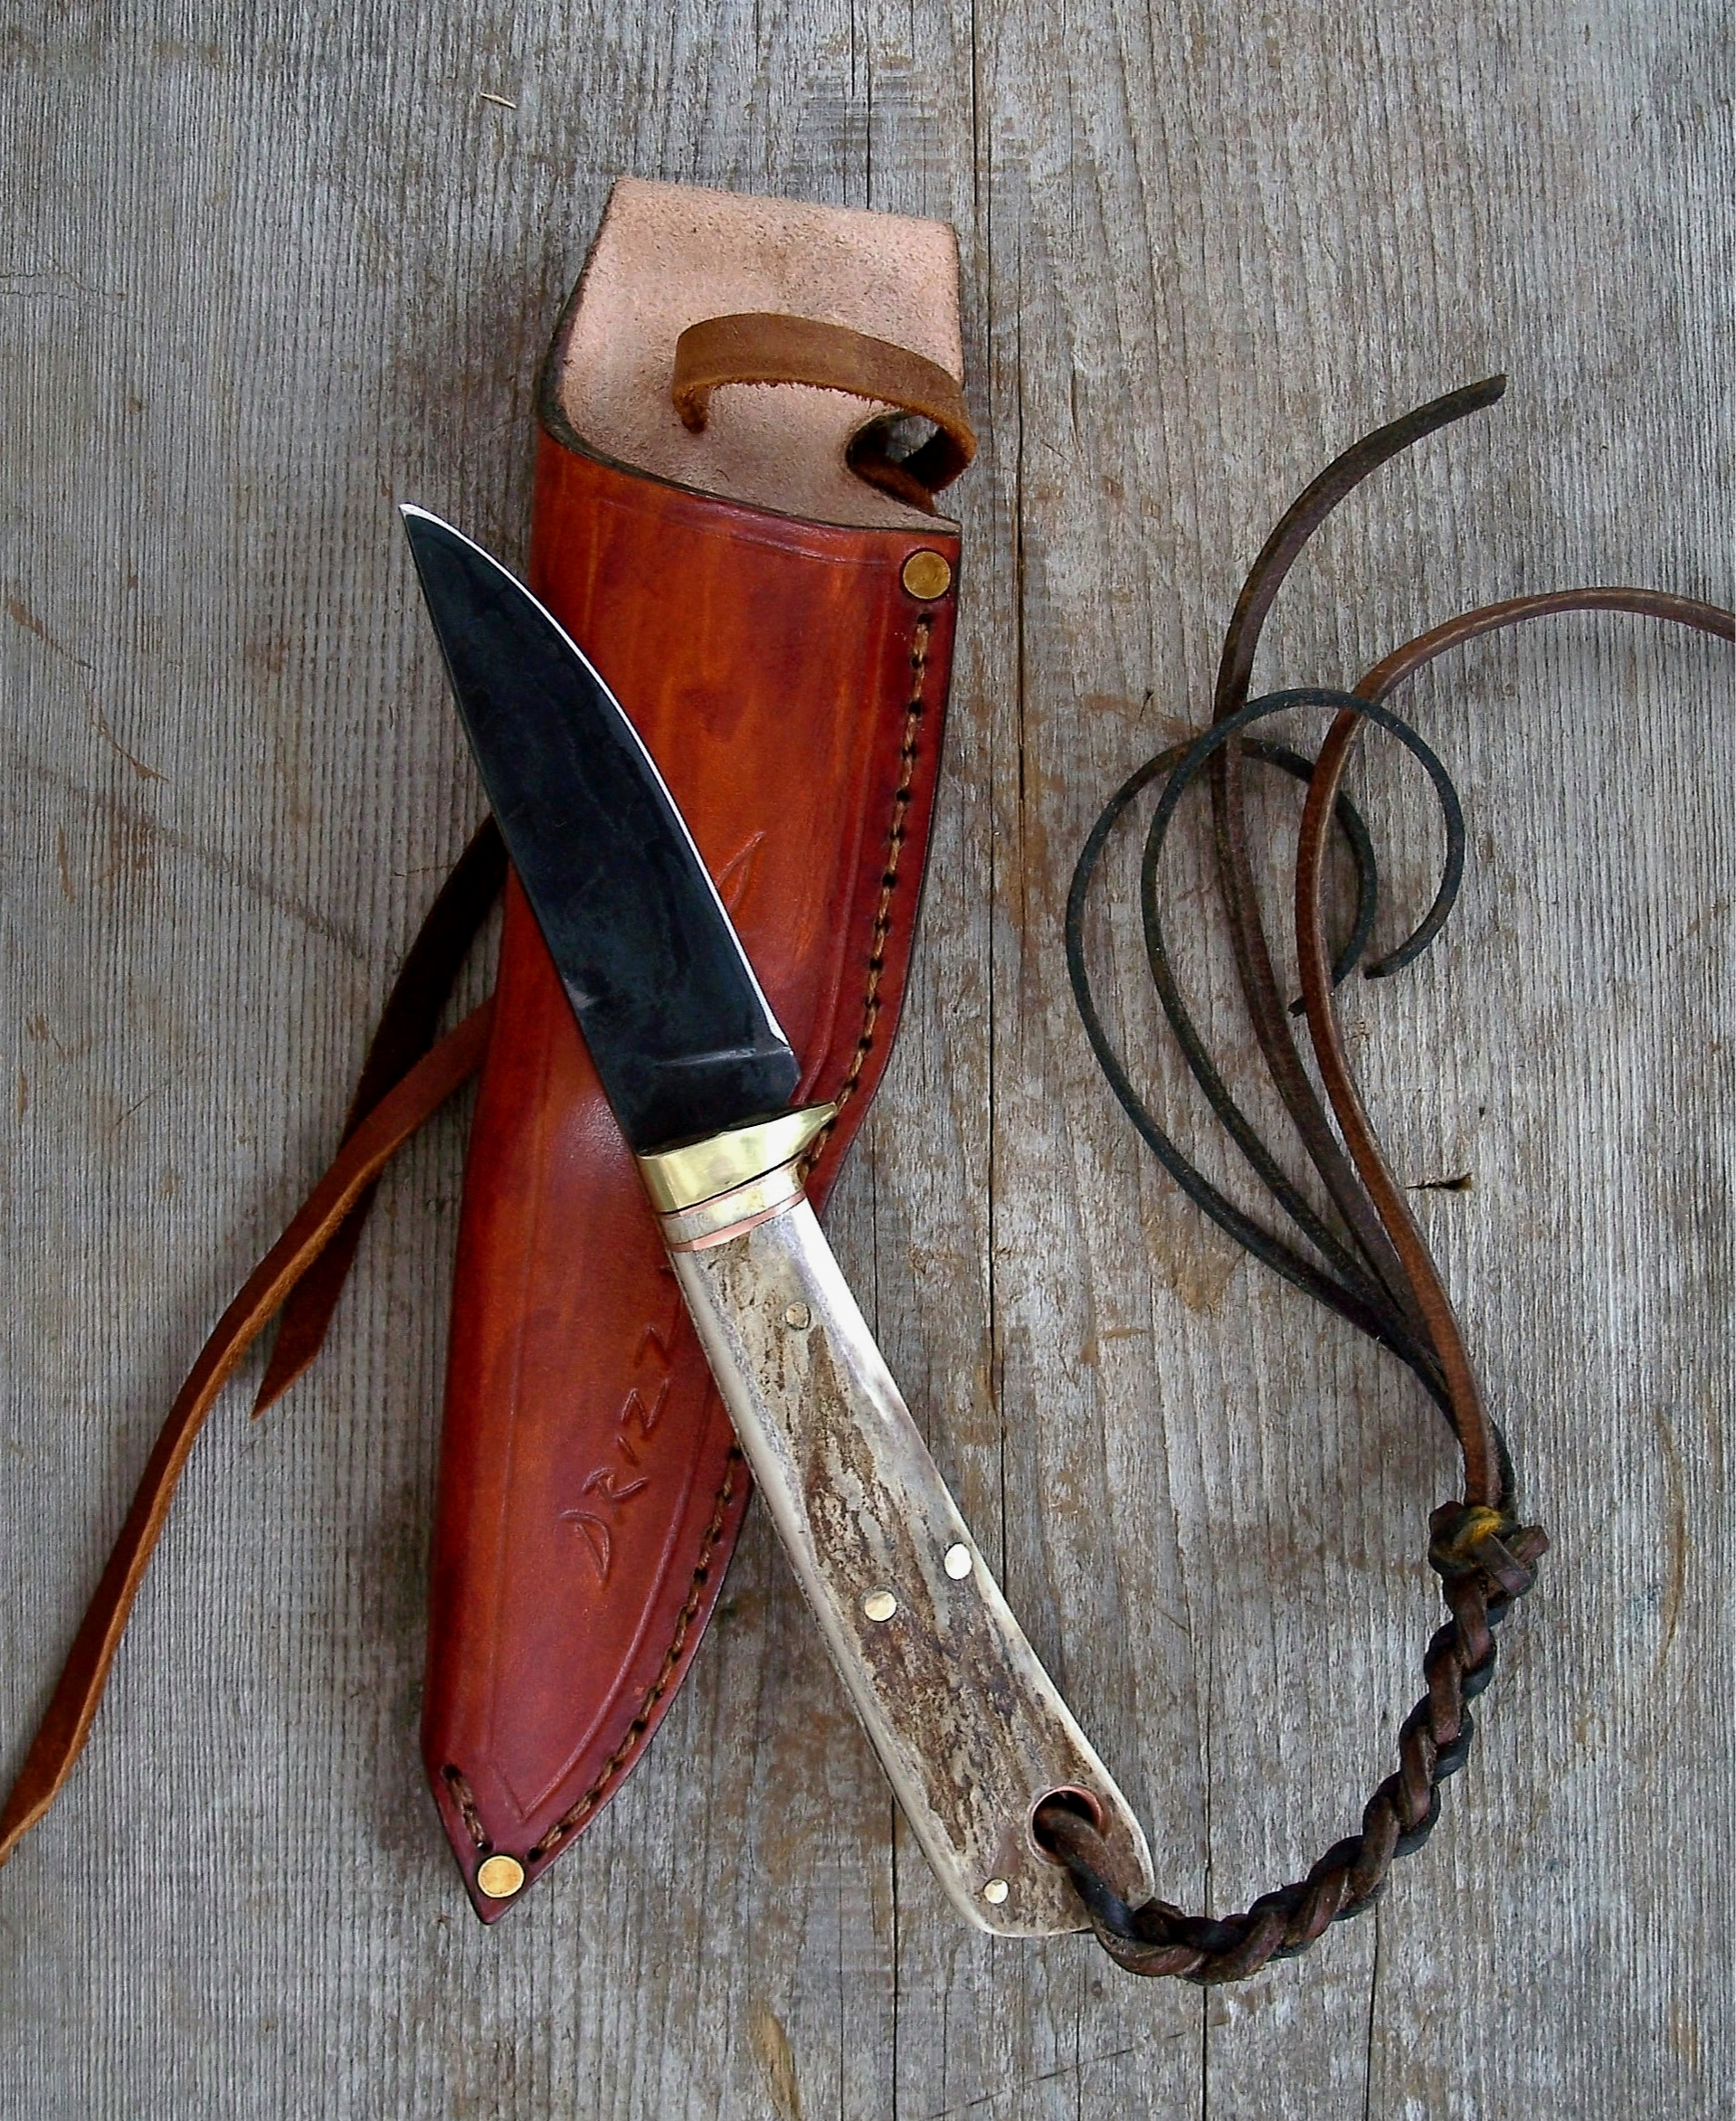 Handmade hand forged drop point knife. Custom made Horseman's knife.